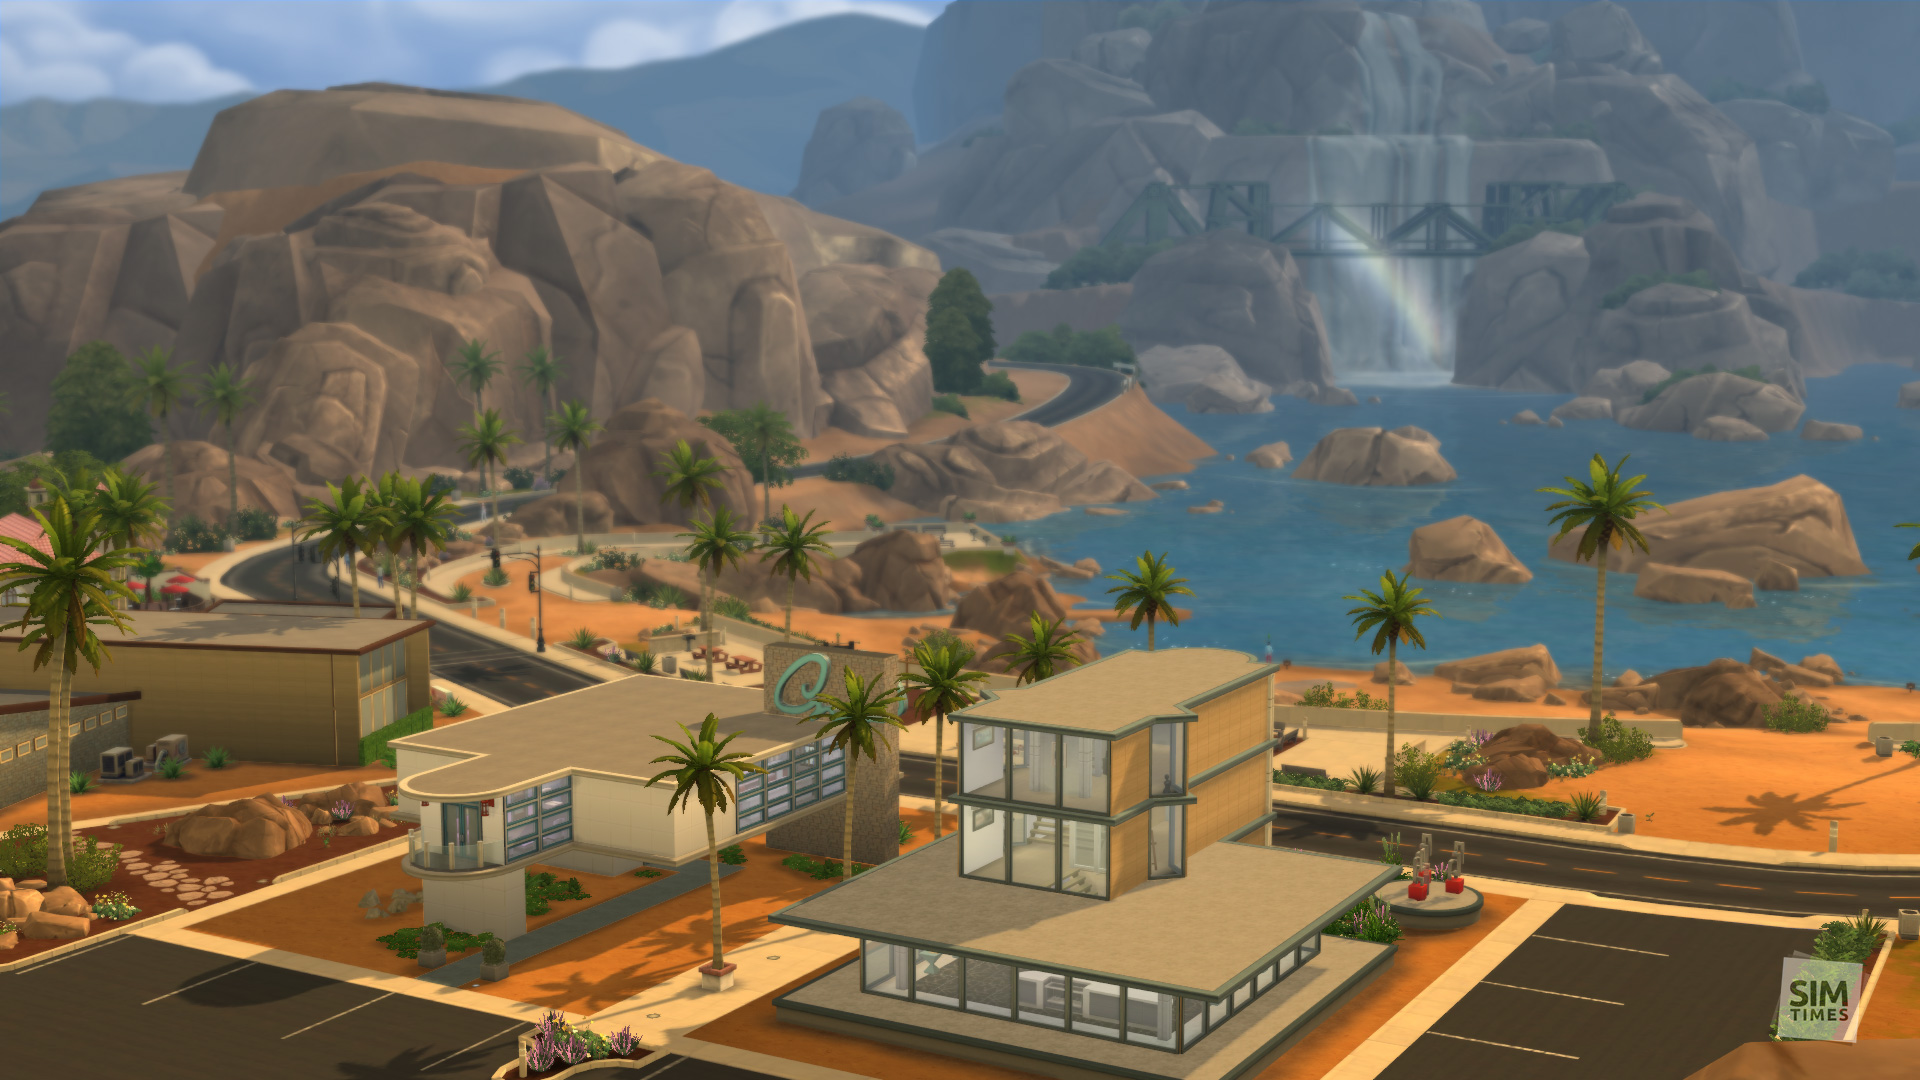 Favorite Area In The Sims 4 The Sims Forums